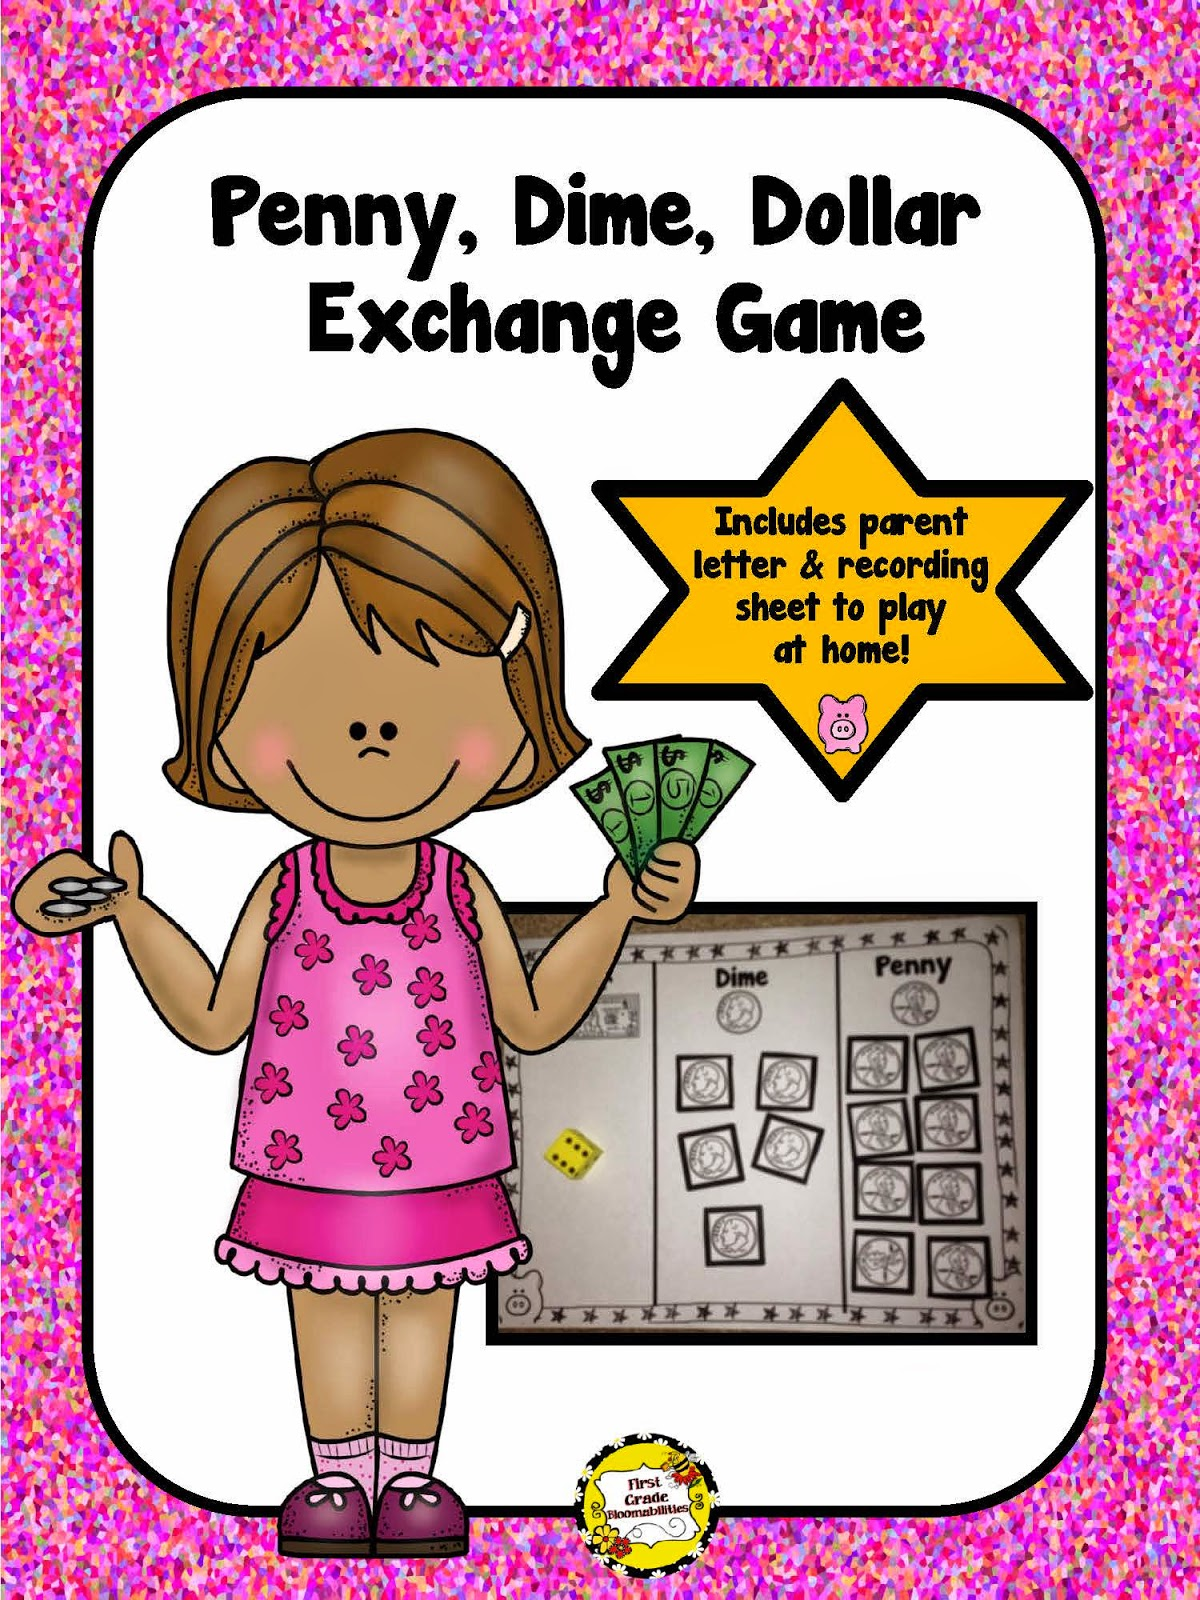 http://www.teacherspayteachers.com/Product/Penny-Dime-Dollar-Money-Exchange-Game-1647799